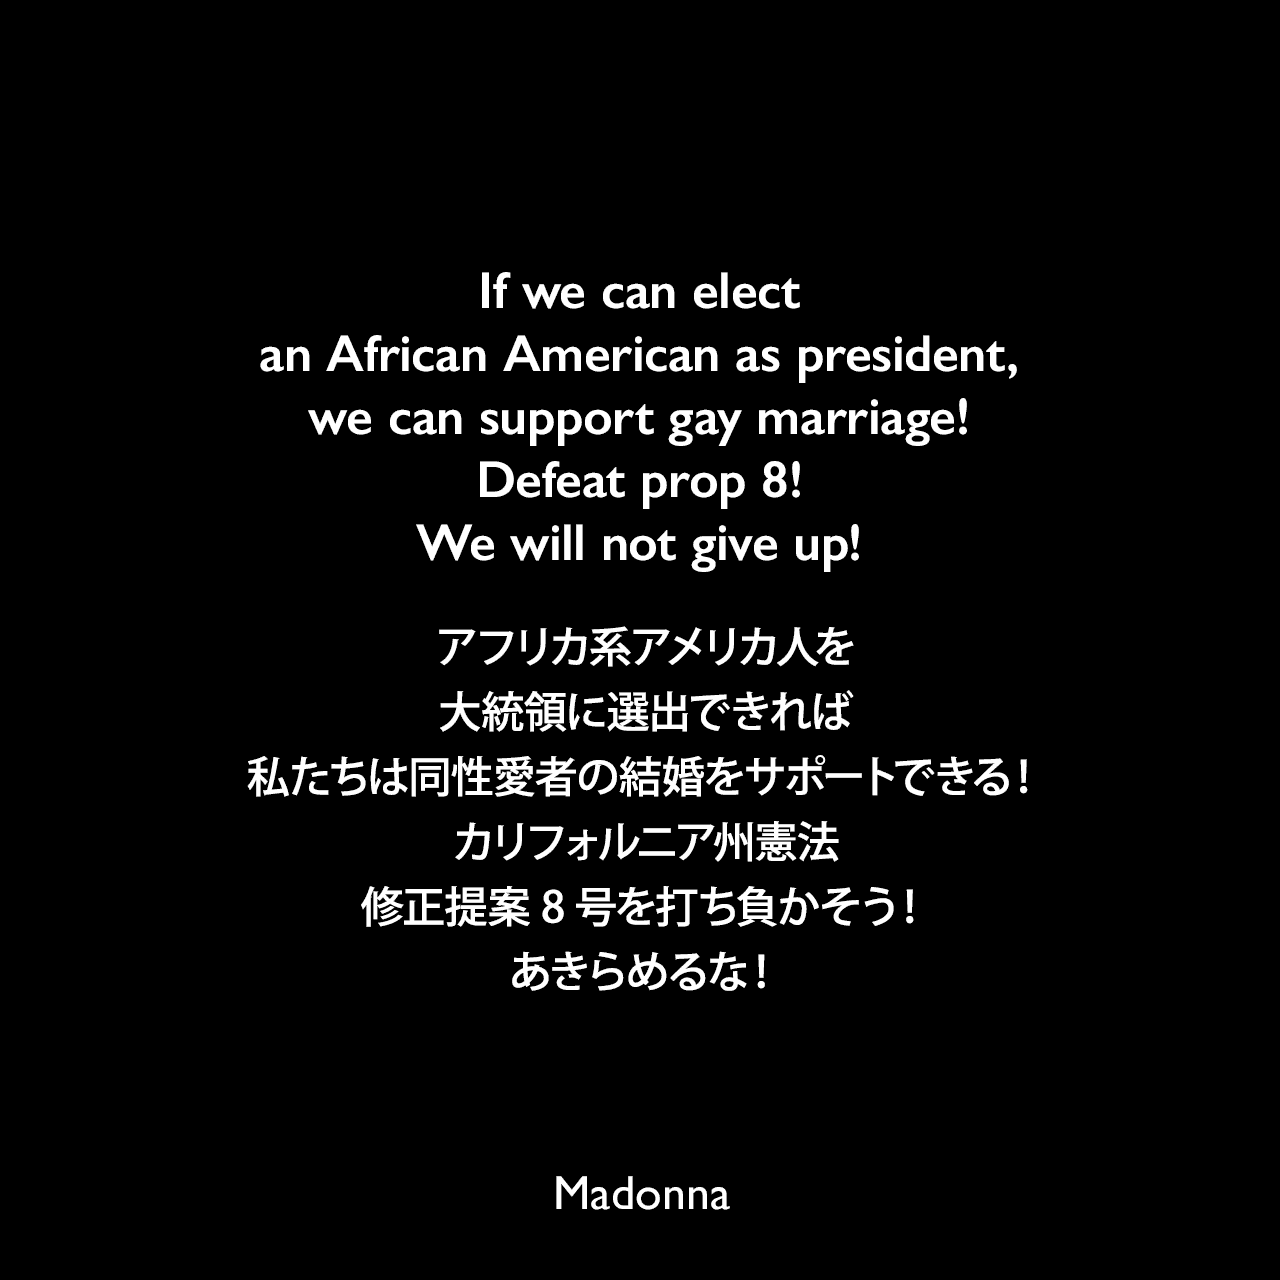 If we can elect an African American as president, we can support gay marriage! Defeat prop 8! We will not give up!アフリカ系アメリカ人を大統領に選出できれば、私たちは同性愛者の結婚をサポートできる!カリフォルニア州憲法修正提案8号を打ち負かそう!あきらめるな!- 2008年11月のタイムズ紙日曜版で、同性愛者の結婚について「アメリカが認めるべき」とマドンナが発言Madonna